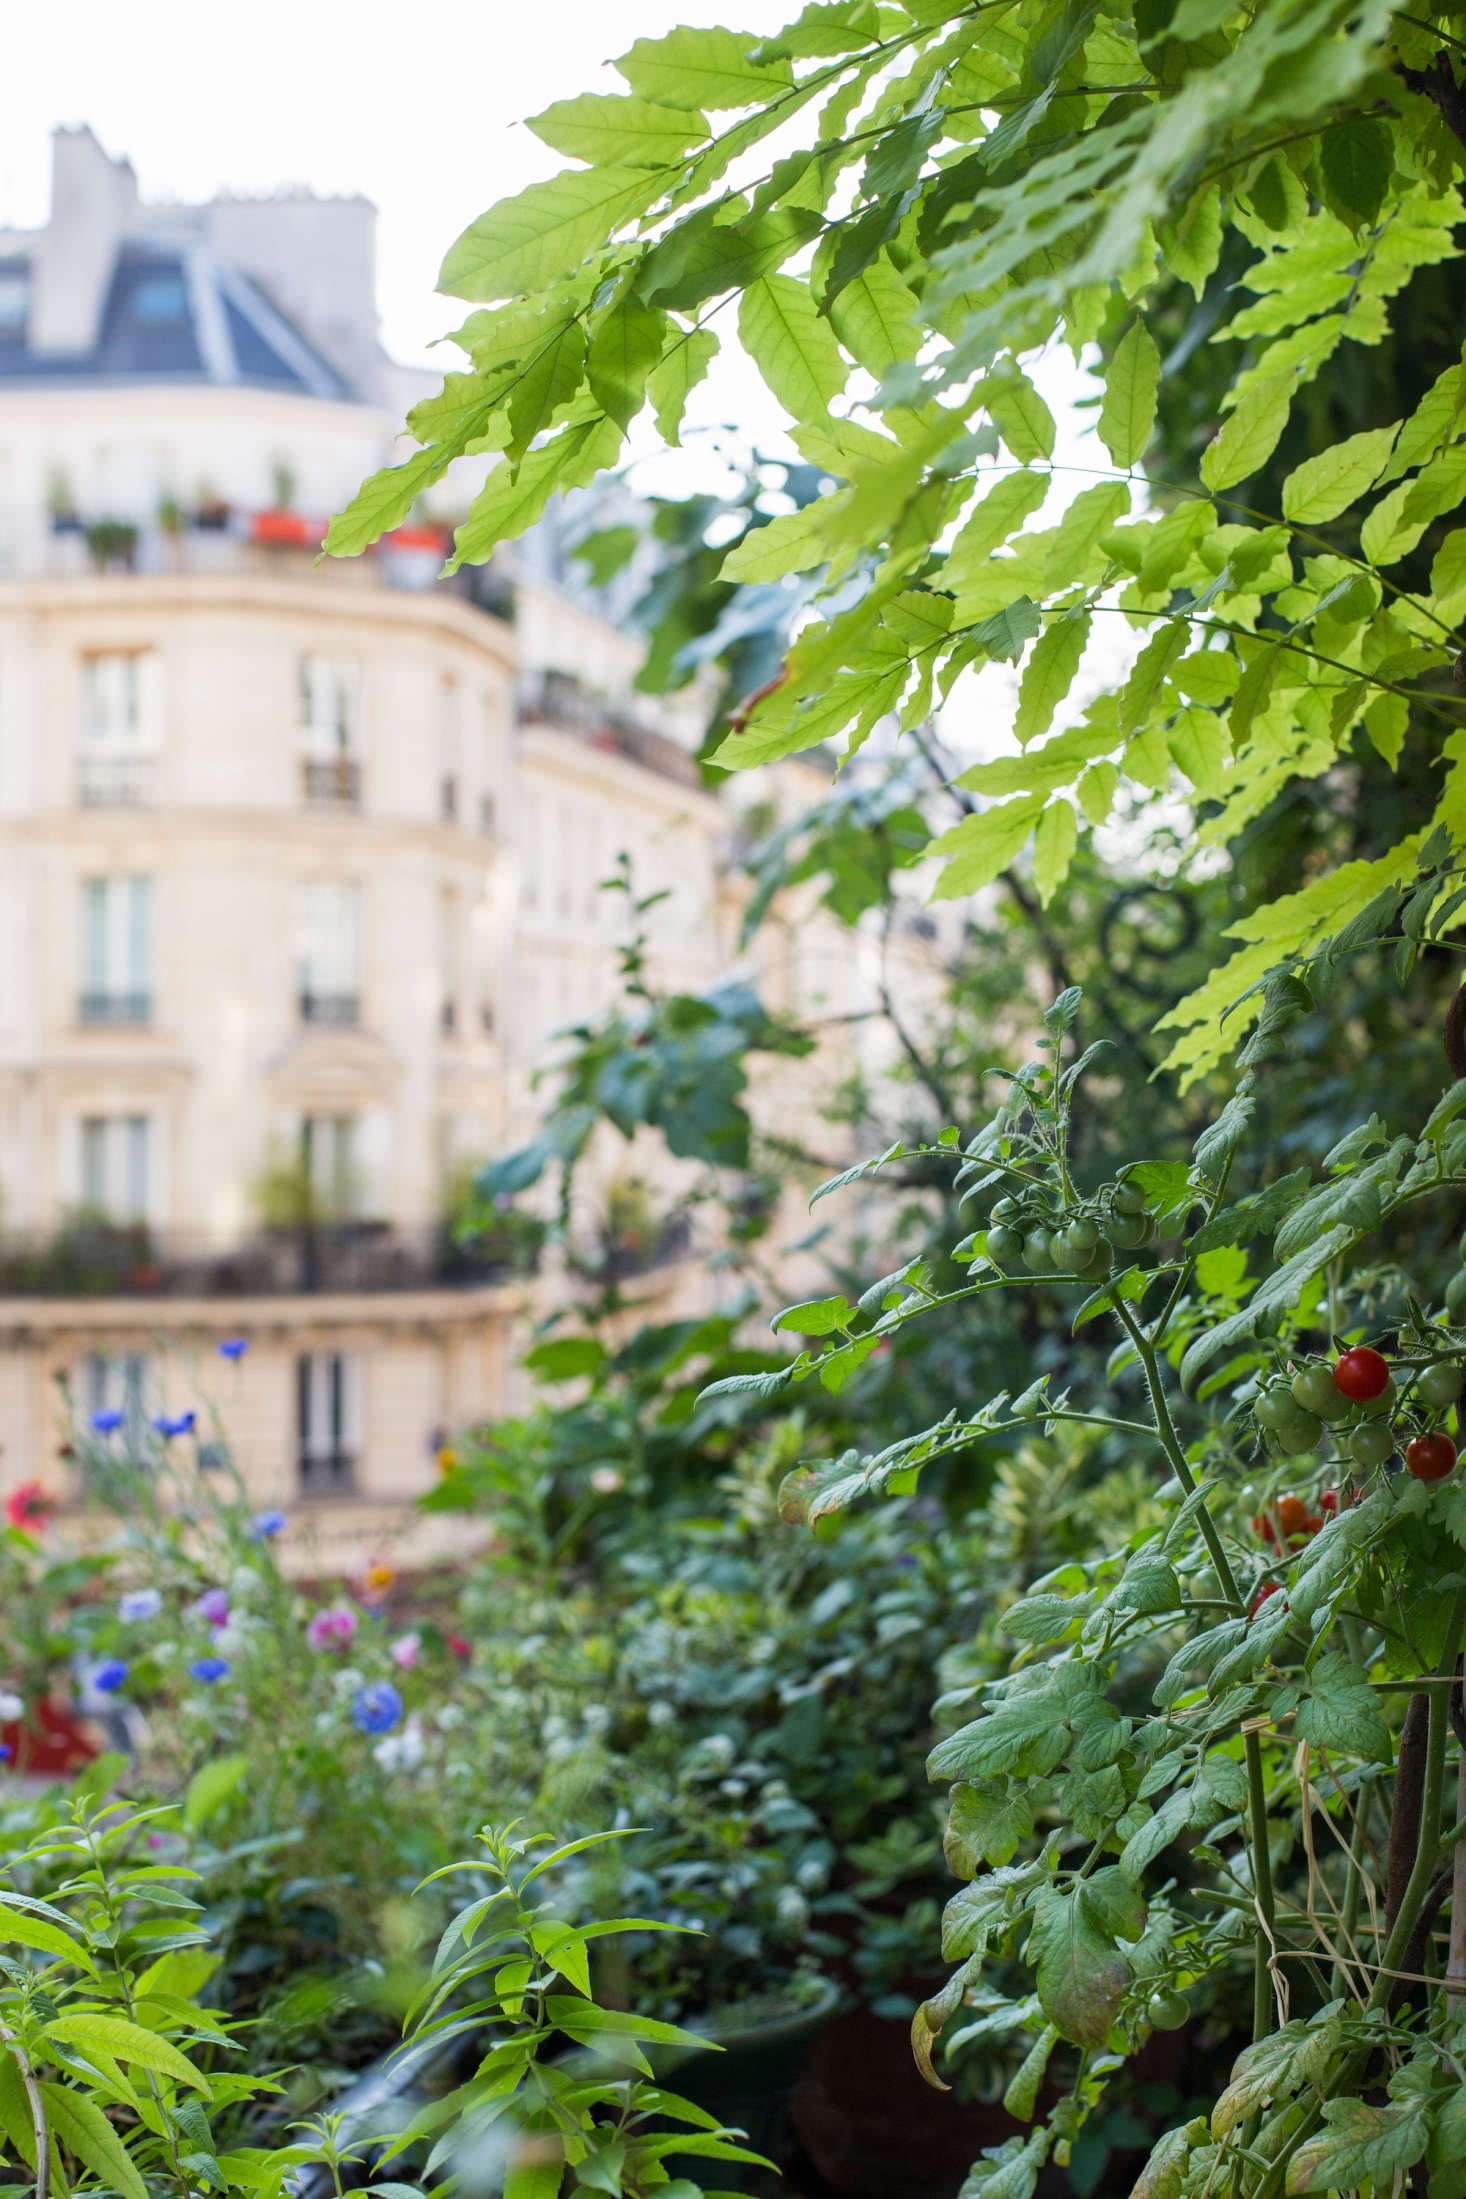 Bushes of cherry tomatoes grow against the facade of the building.